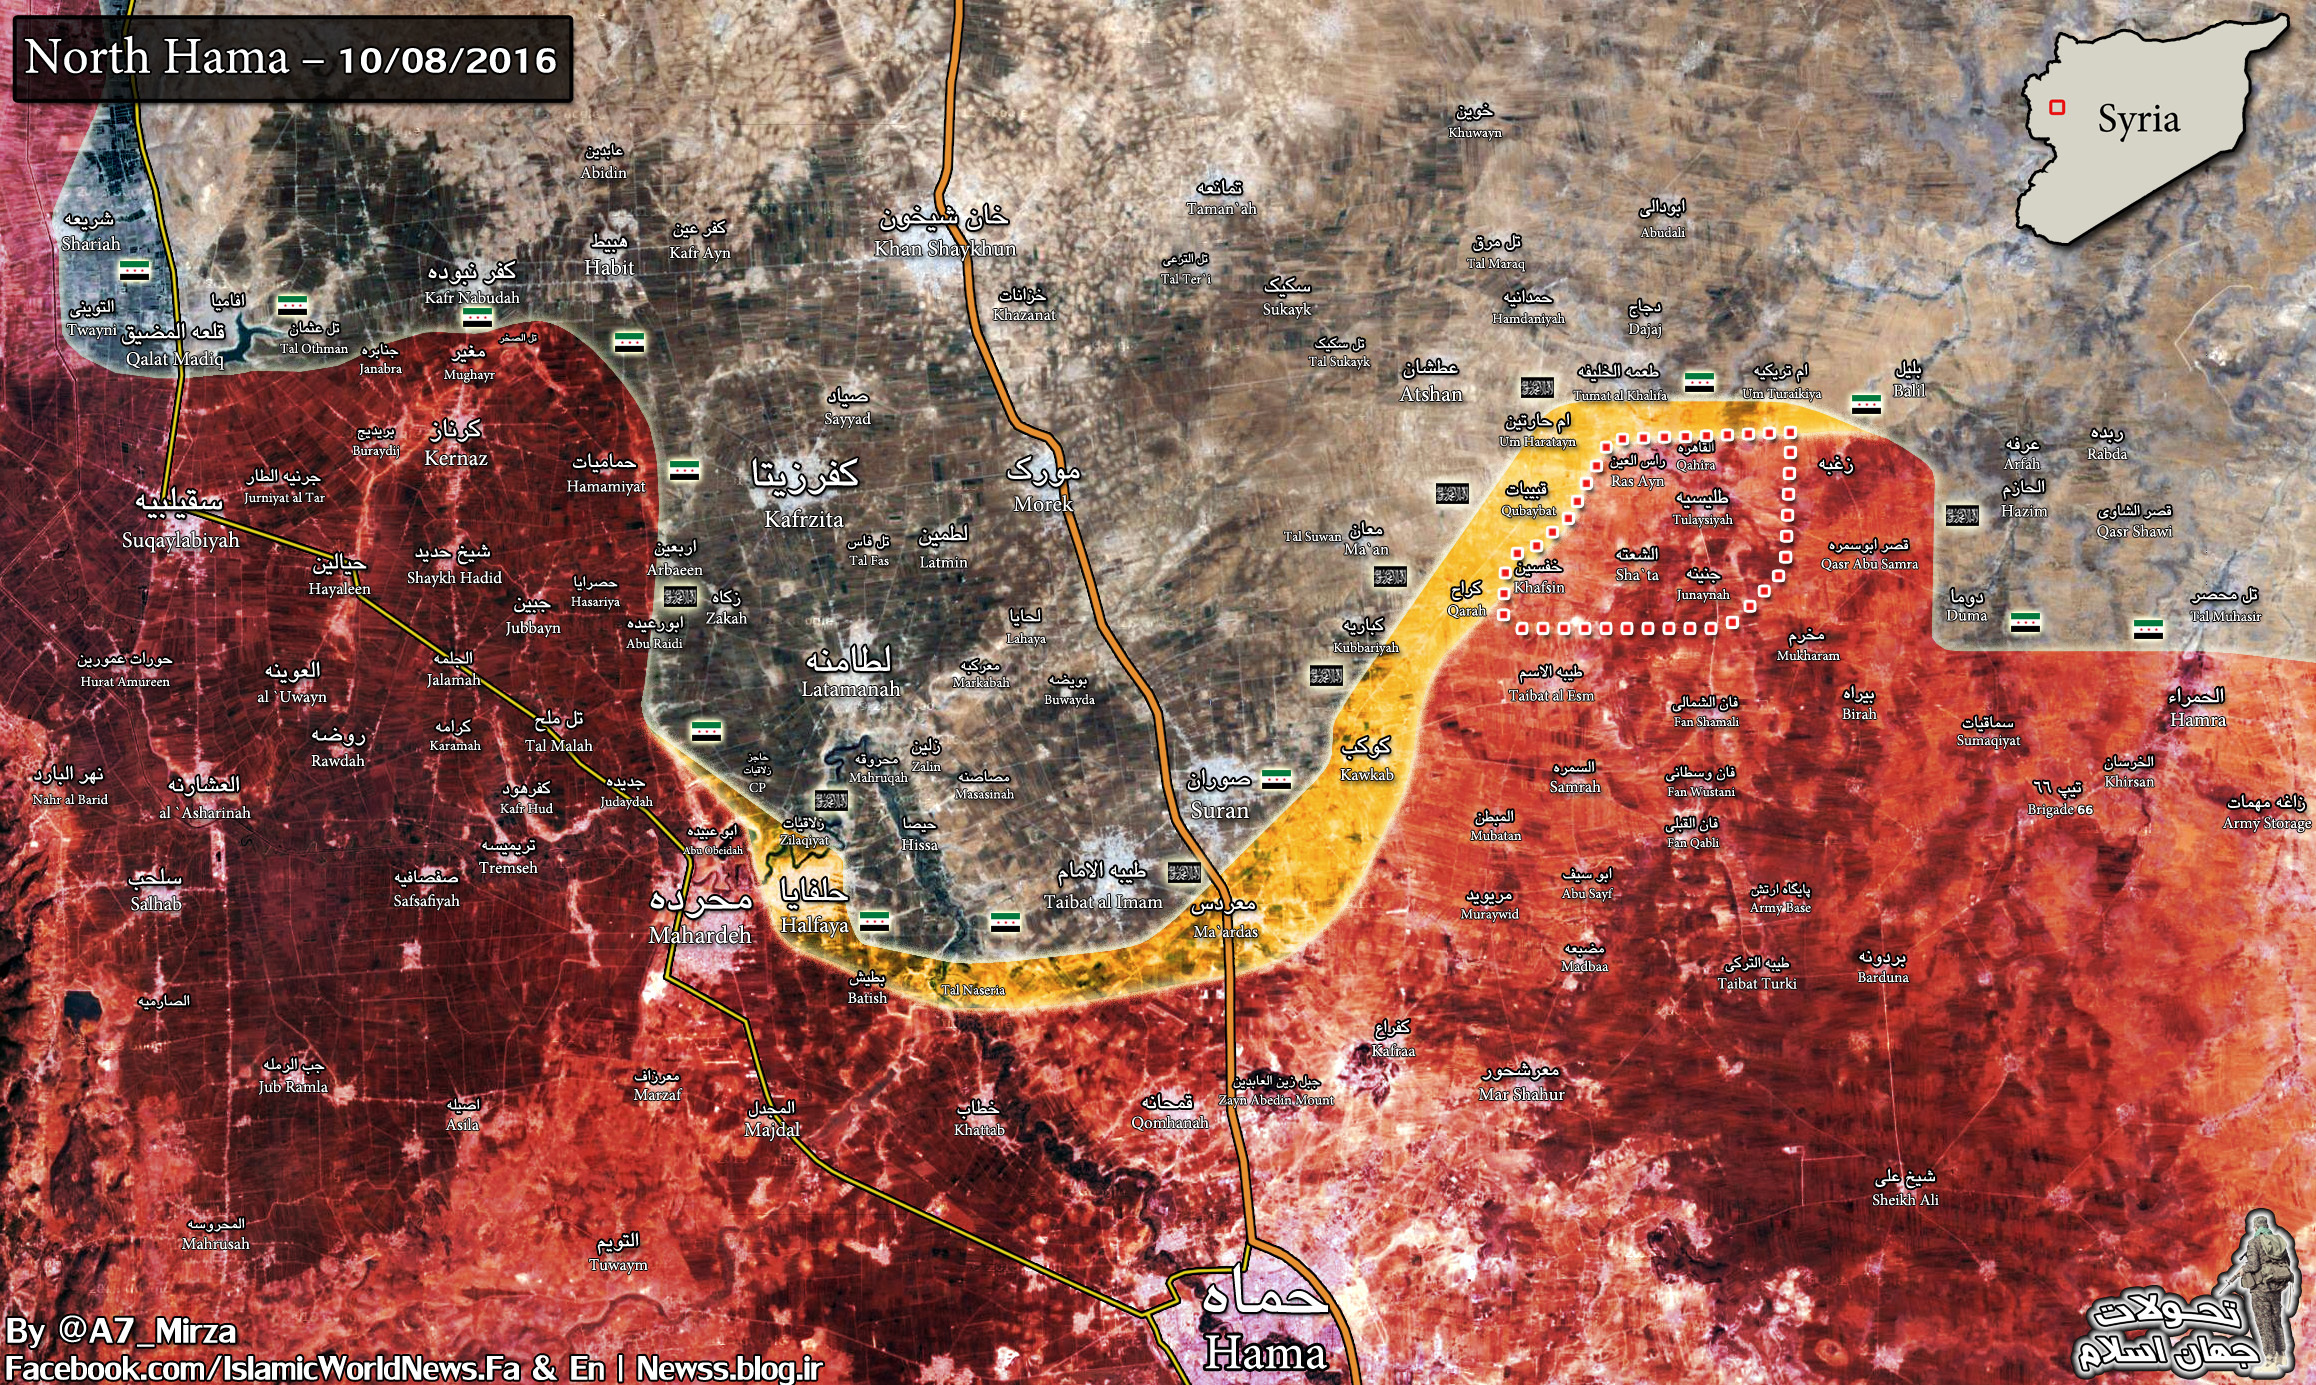 Military Situation in Northern Hama after Recent Advances by Syrian Army